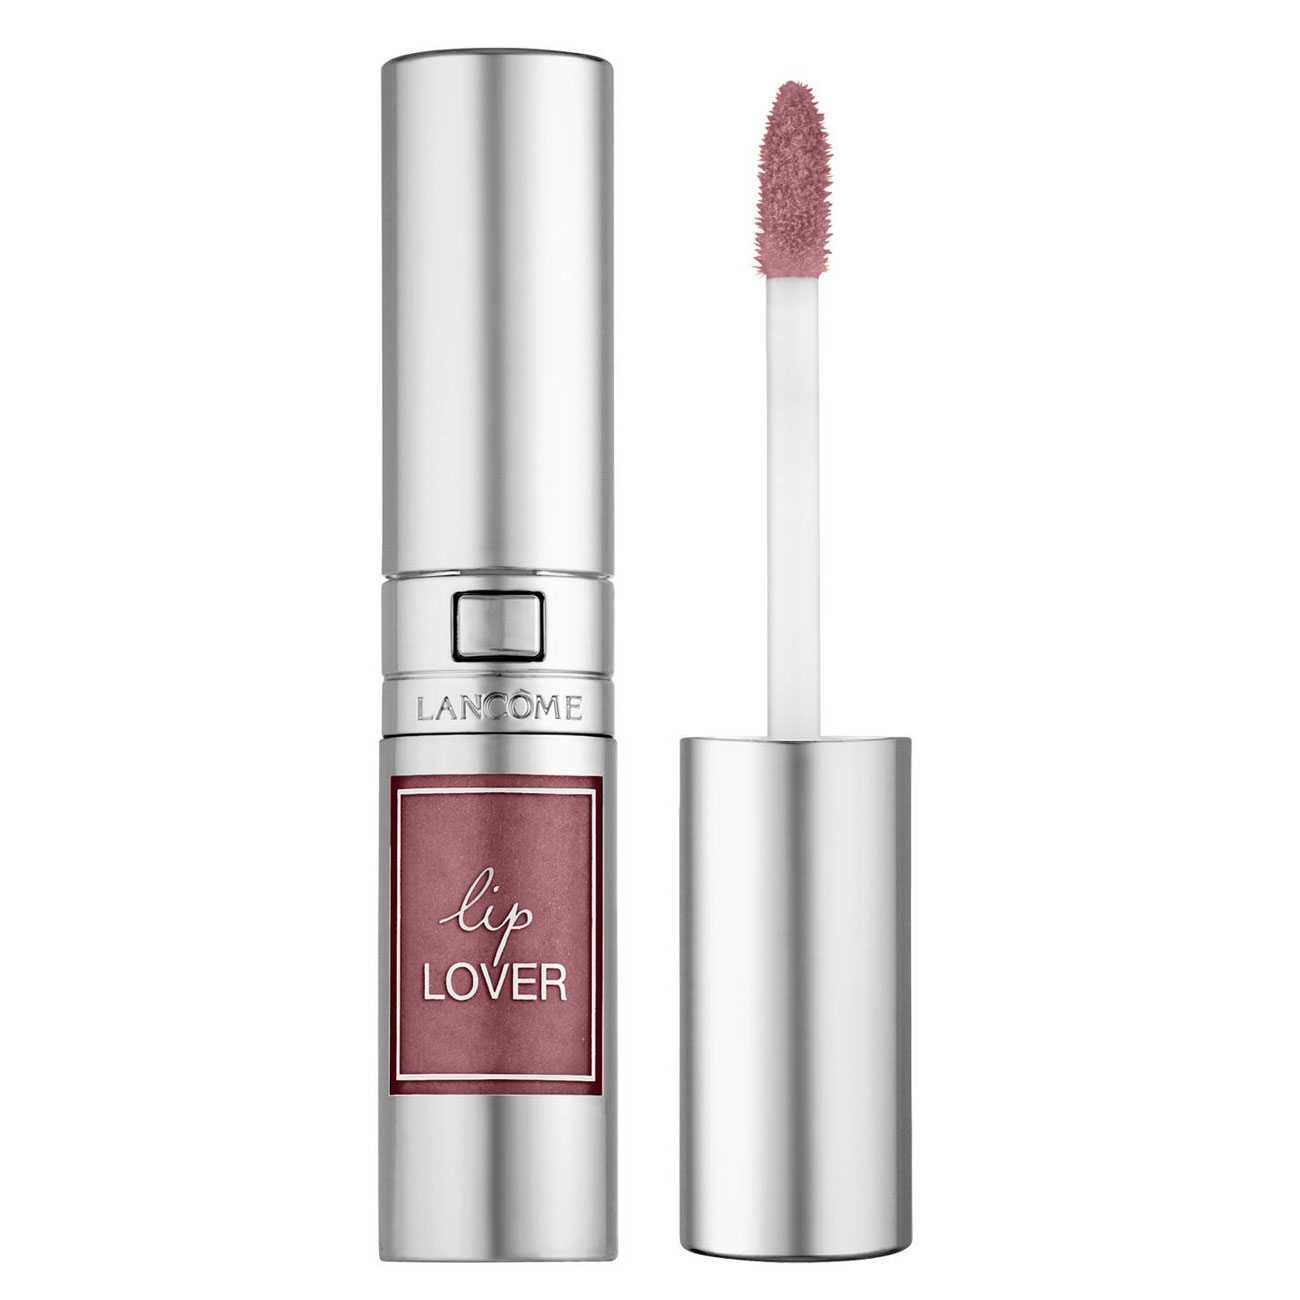 LIP LOVER 4 G ROSE DES CYGNES 338